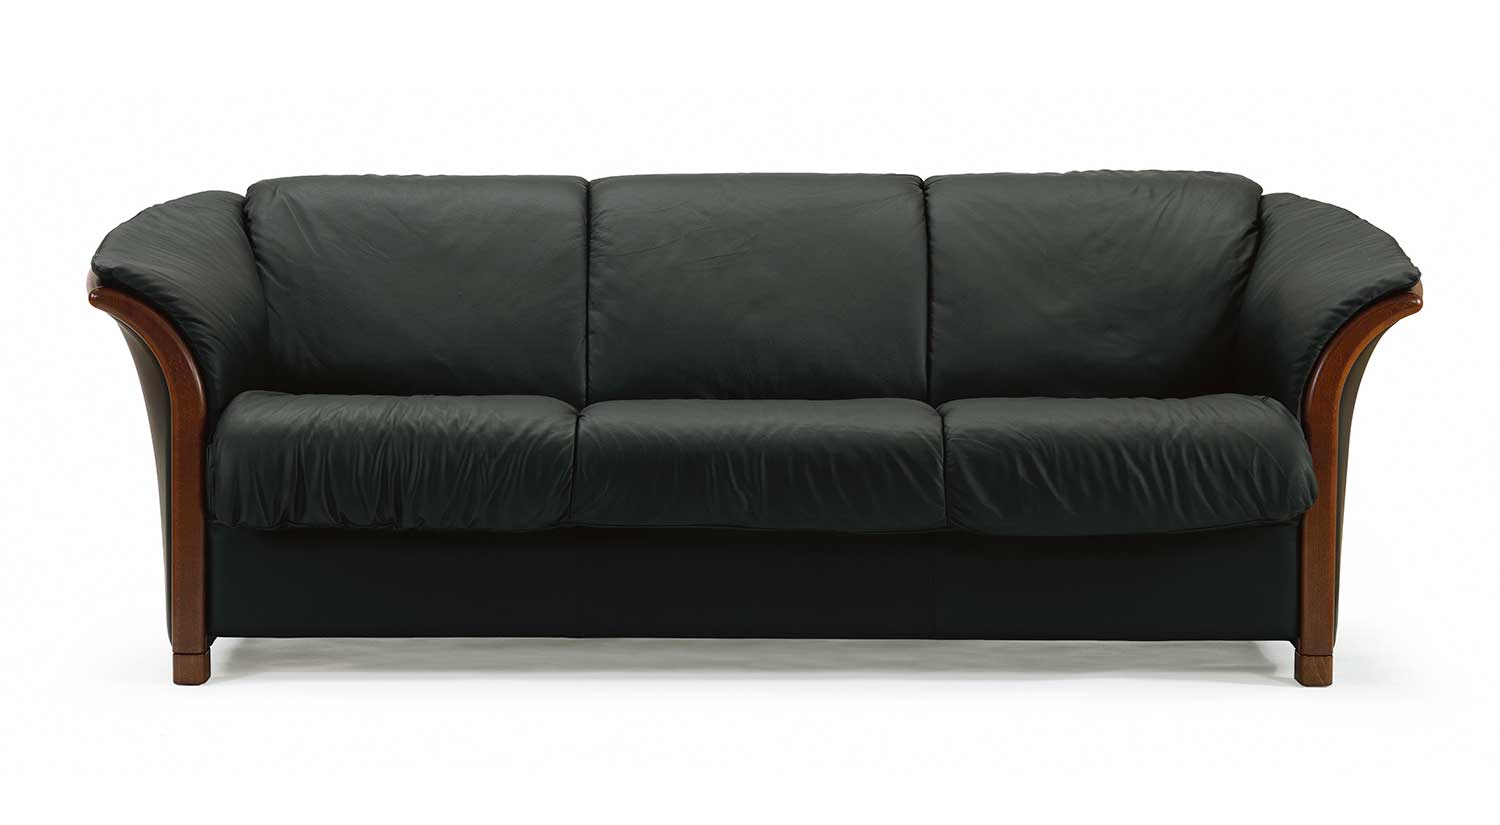 Sofa Fra Ekornes Circle Furniture Manhattan Ekornes Sofa Stressless